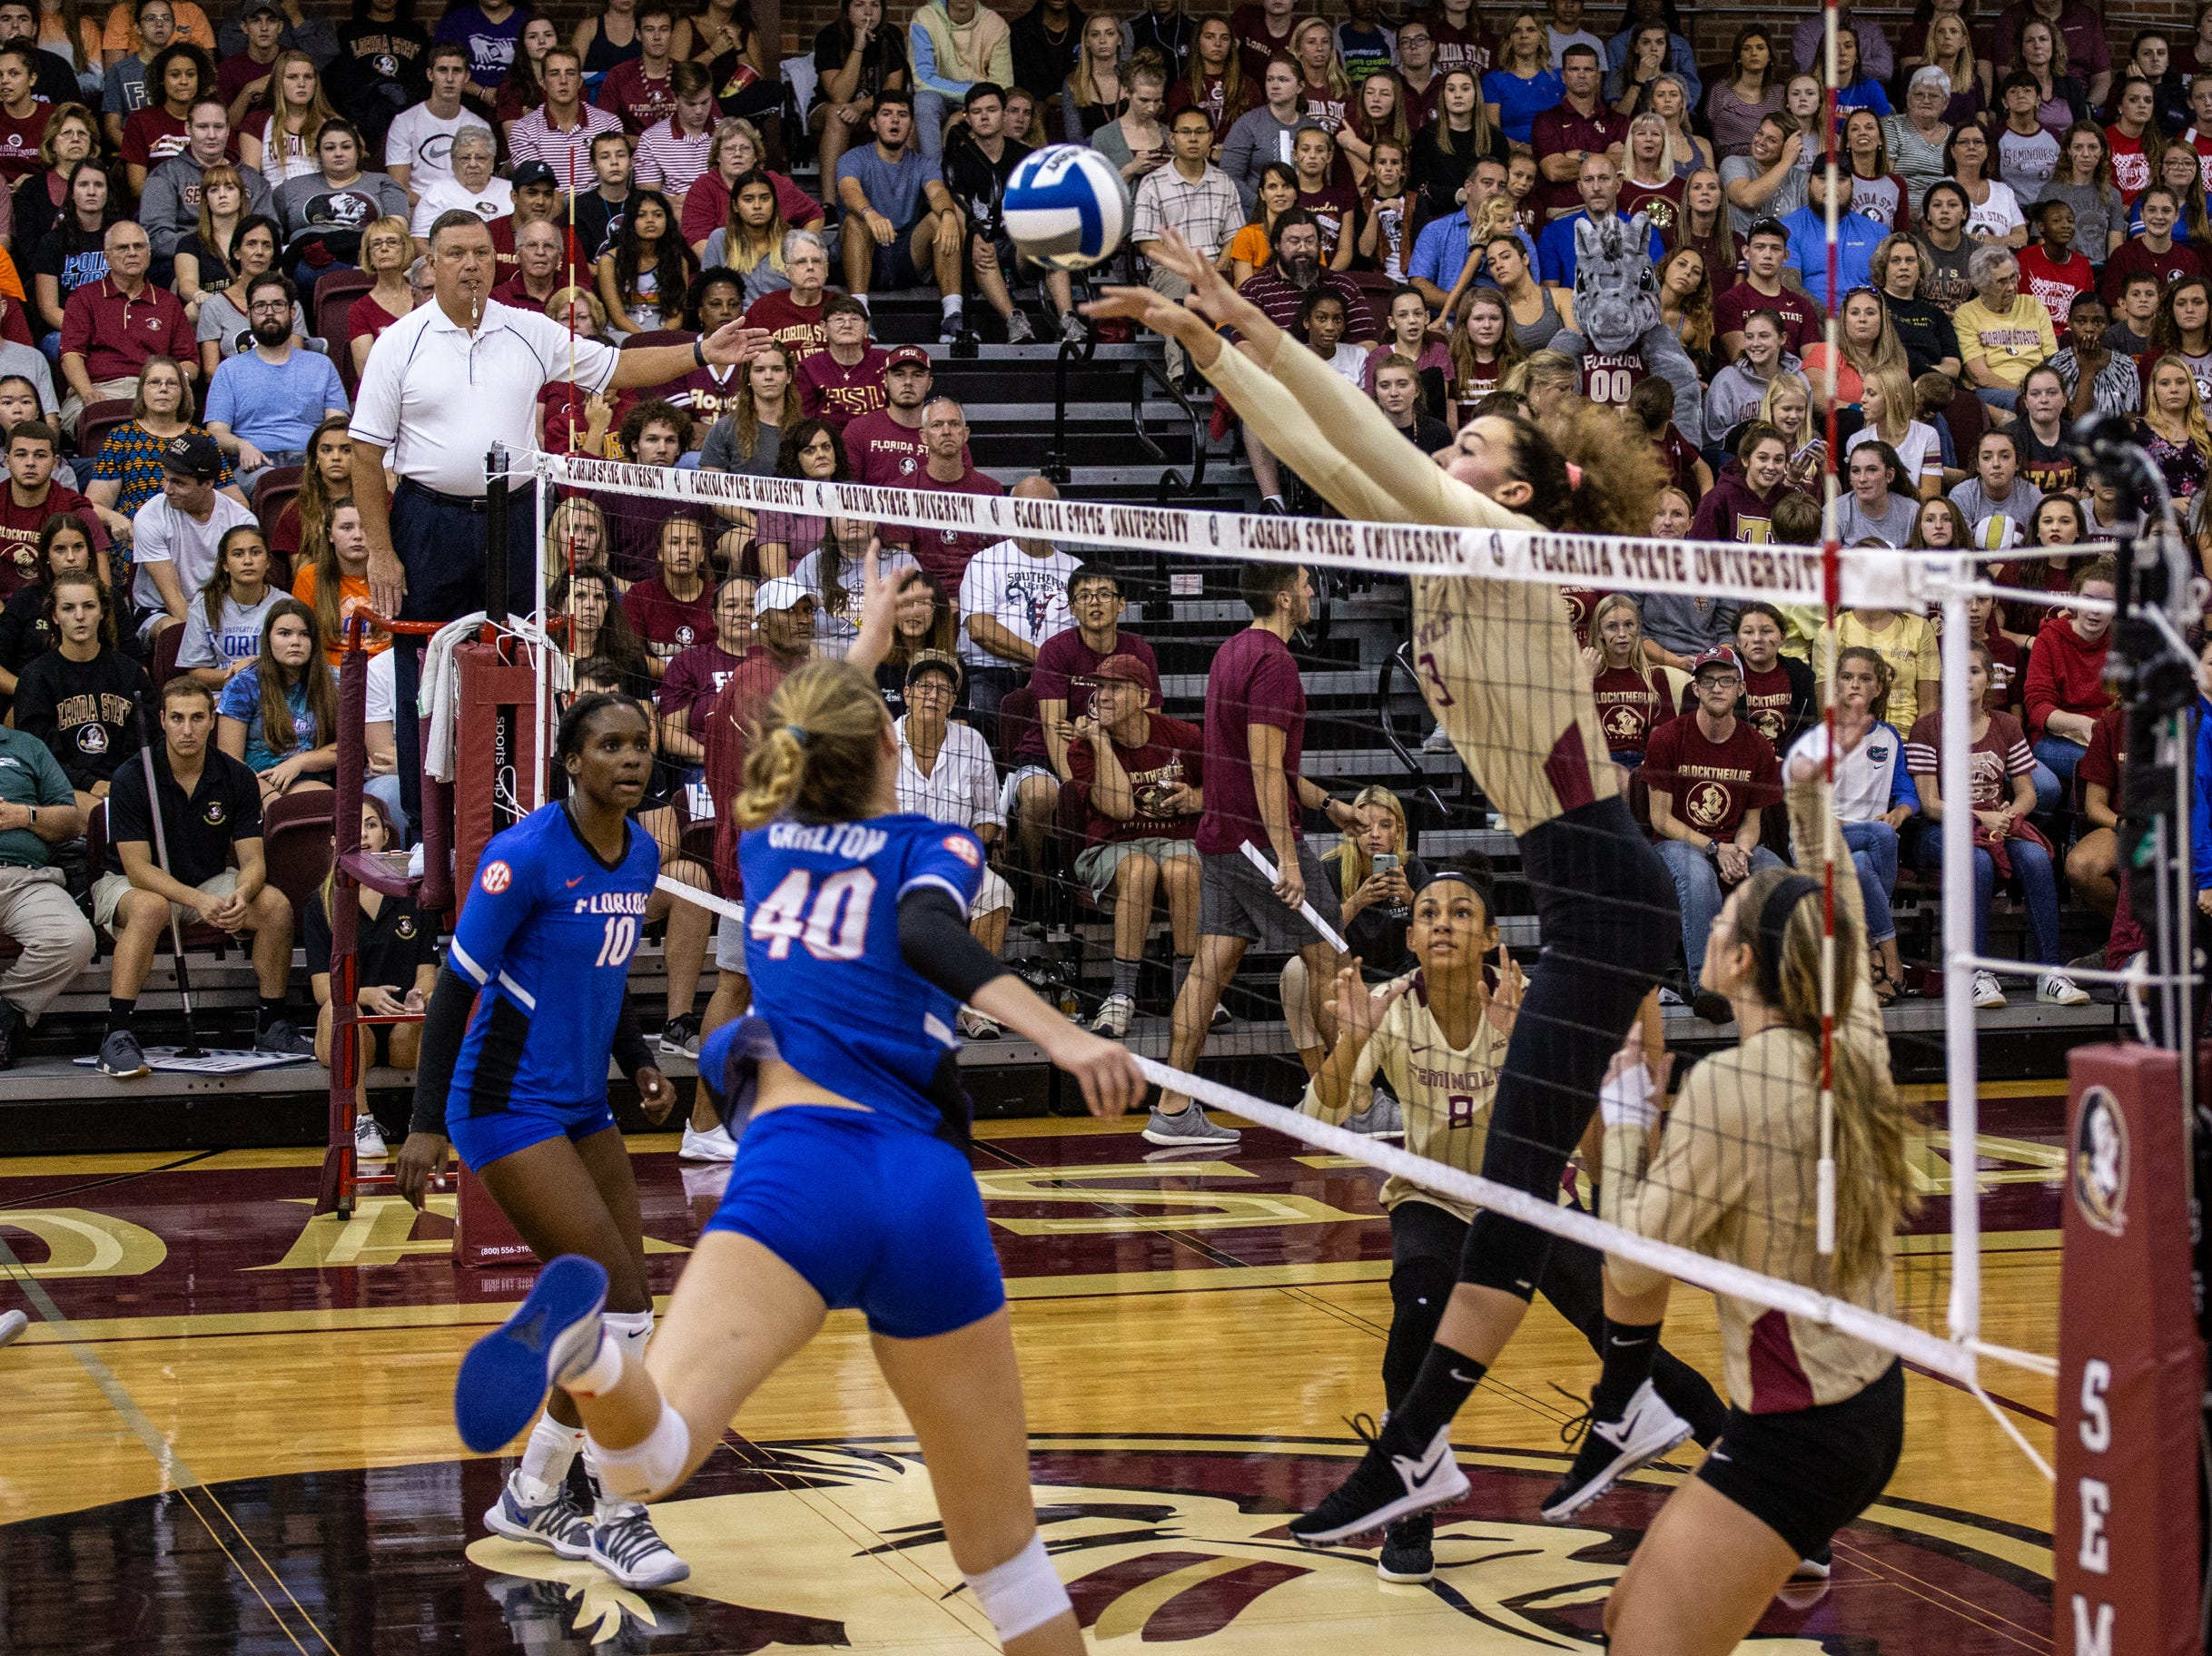 FSU outside hitter Morgan Chacon (3) blocks the ball sent over the net by UF's Holly Carlton (40) at Tully Gym.